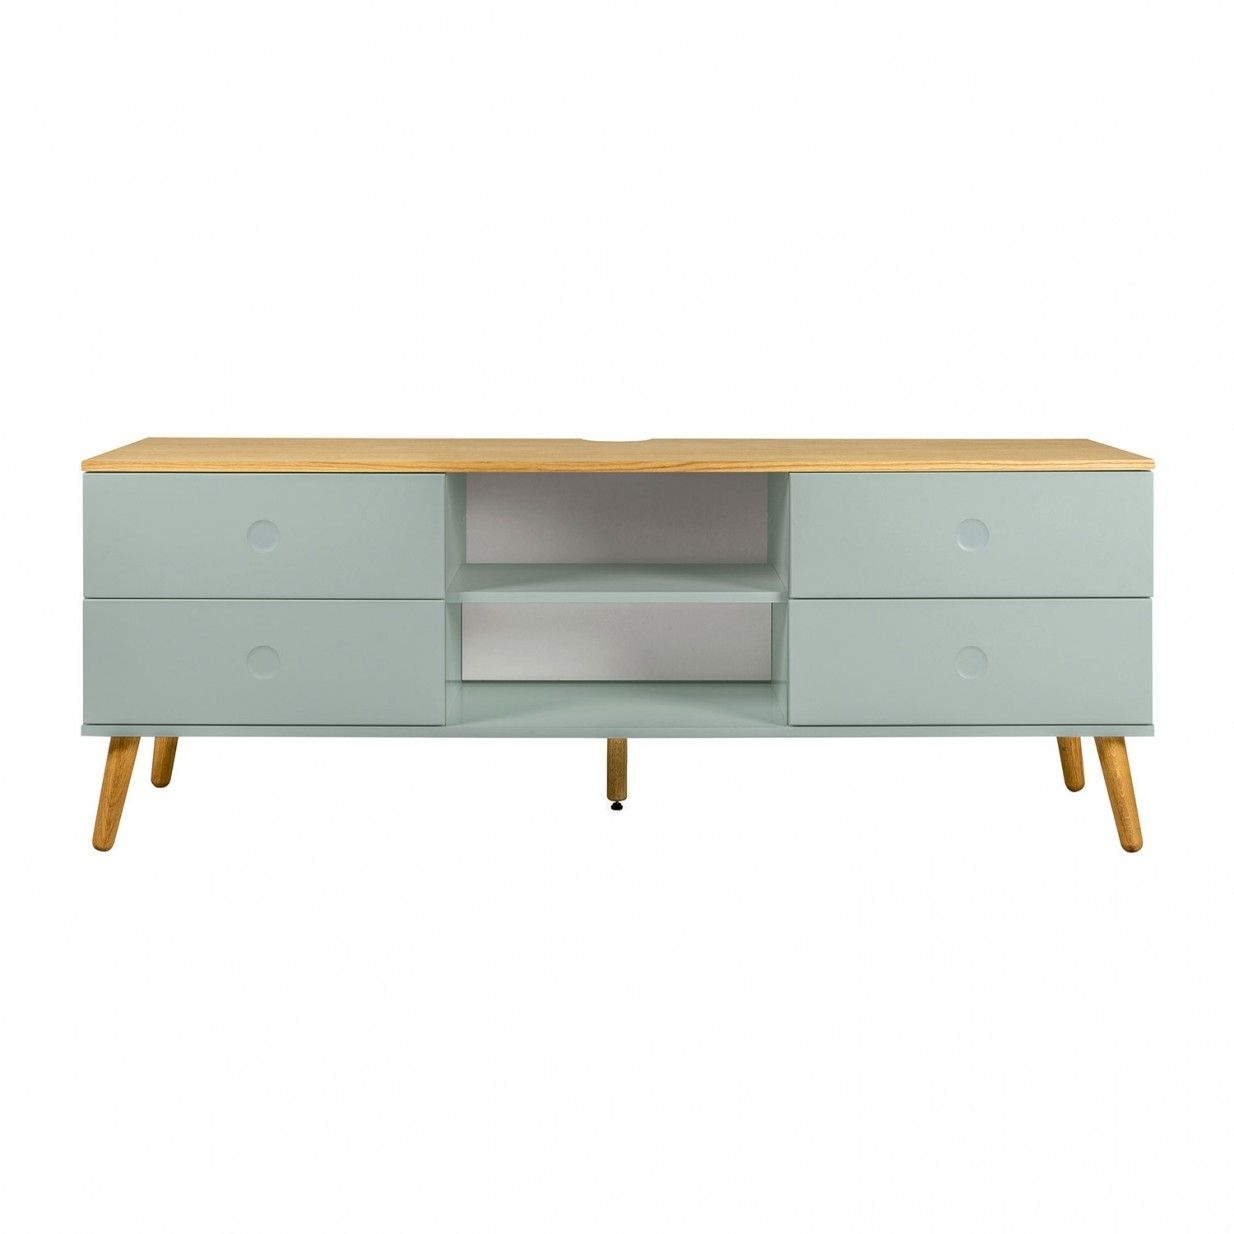 Https://monoqi/de/tv-Boards/dot-Tv-Bank-Mint/tenzo/mq000147146 with regard to Leven Wine Sideboards (Image 13 of 30)